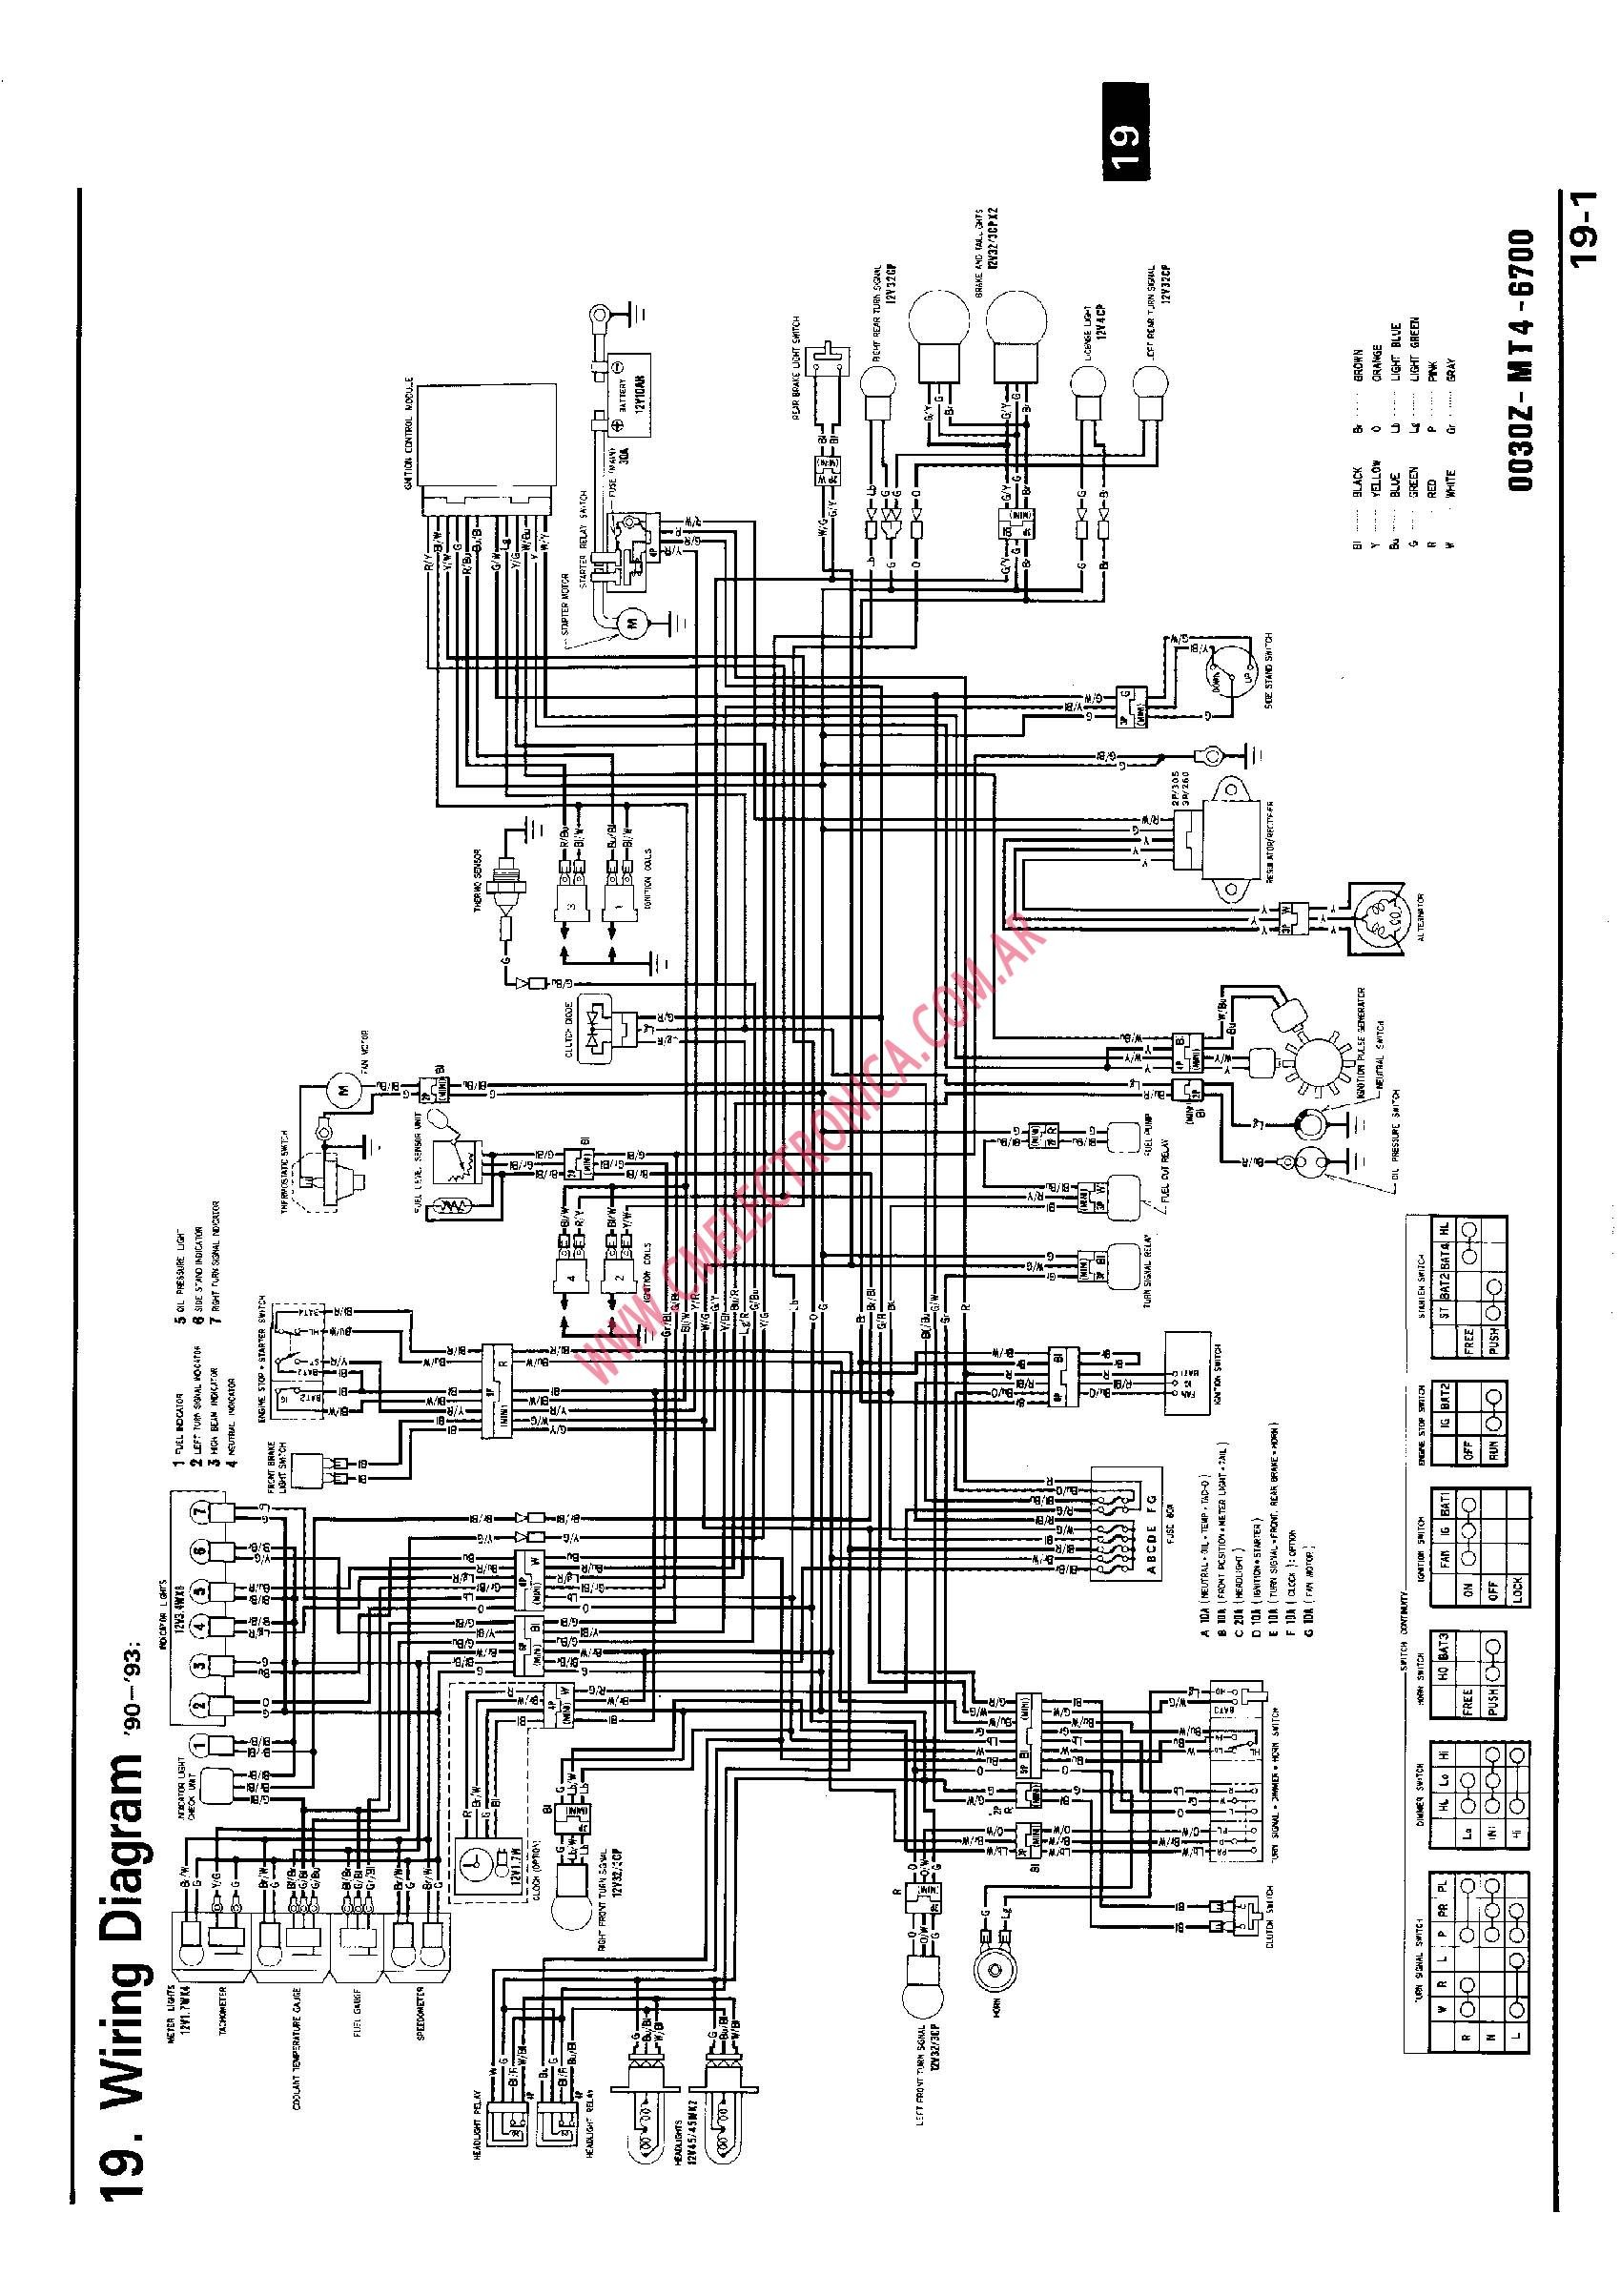 Honda C70 Engine Diagram Wiring For Gx240 Diagrams Instructions Of